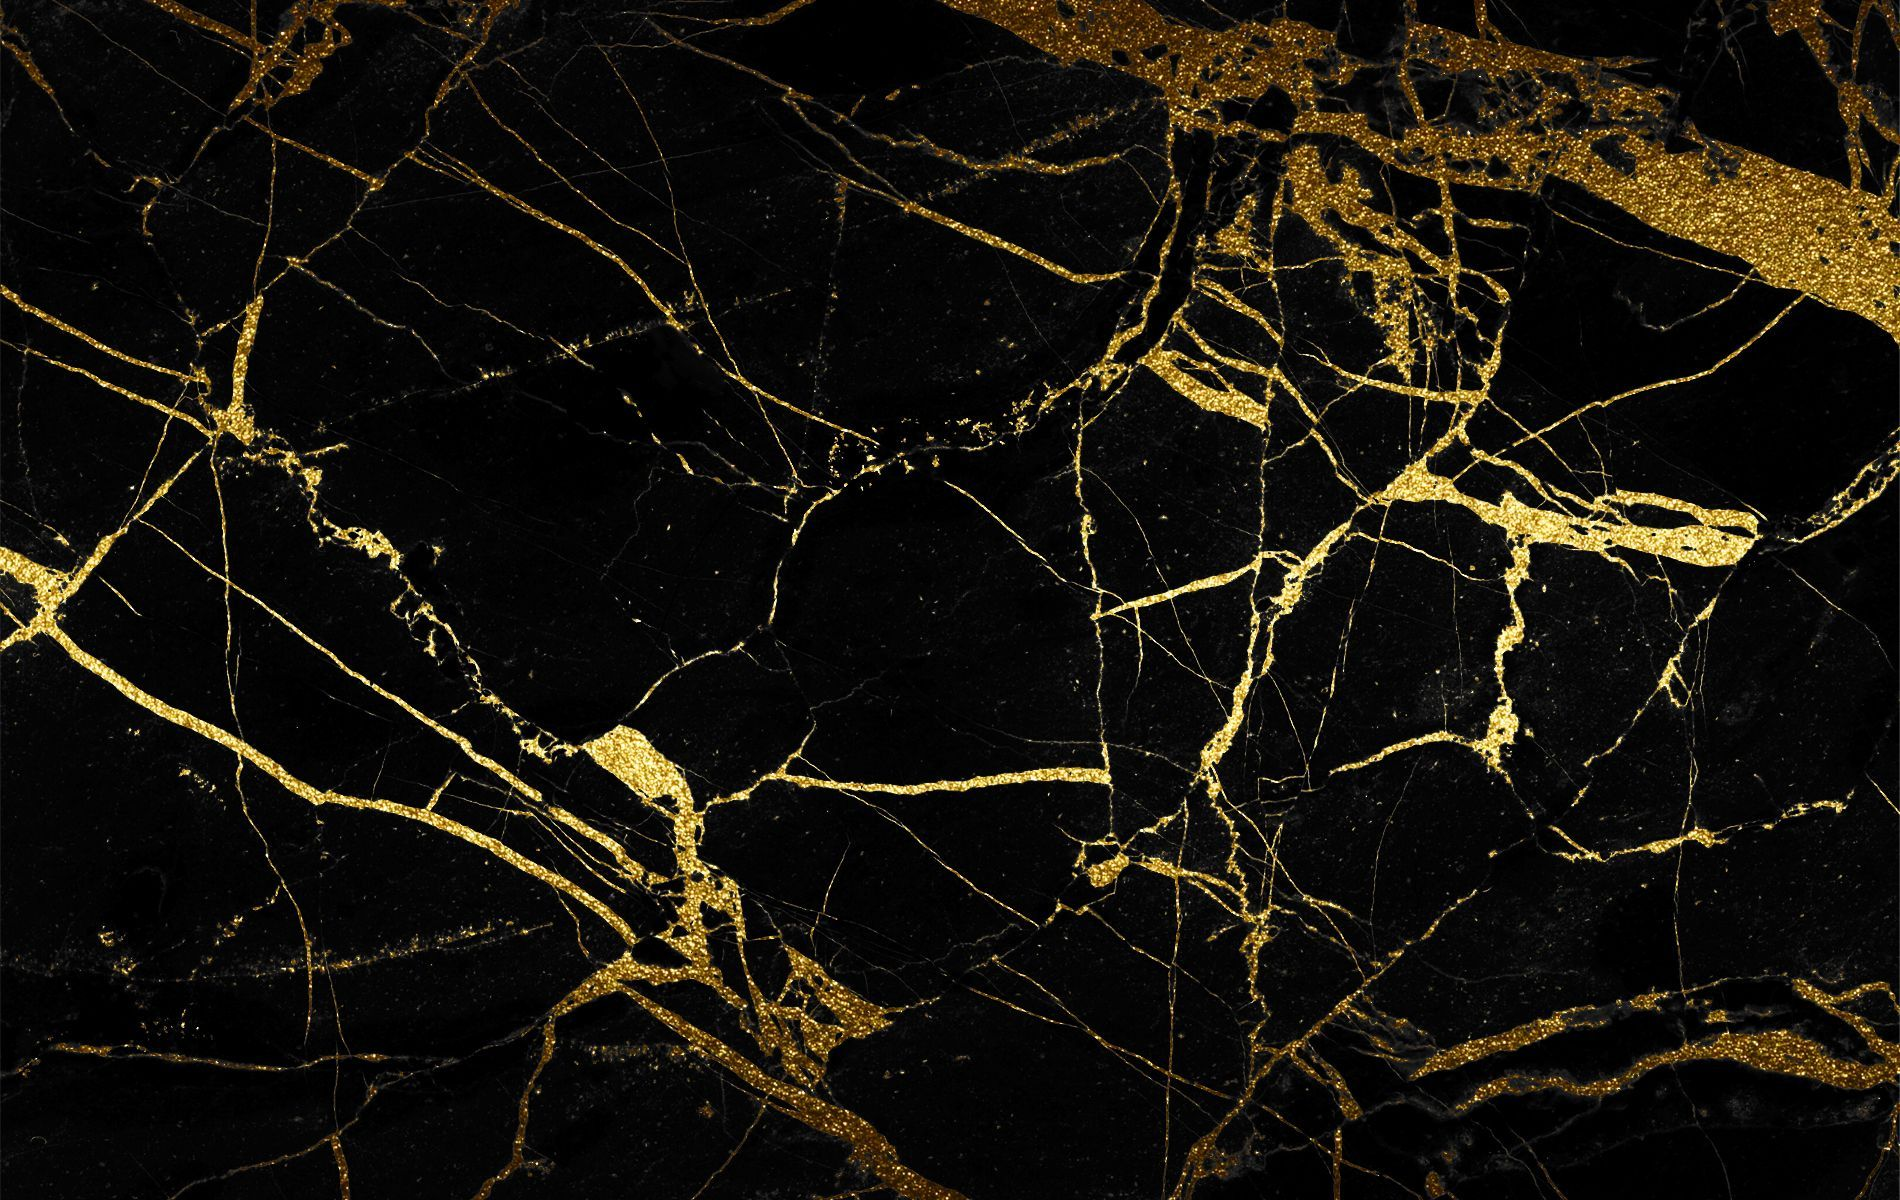 Black And Gold Marble Wallpapers Top Free Black And Gold Marble Backgrounds Wallpaperaccess